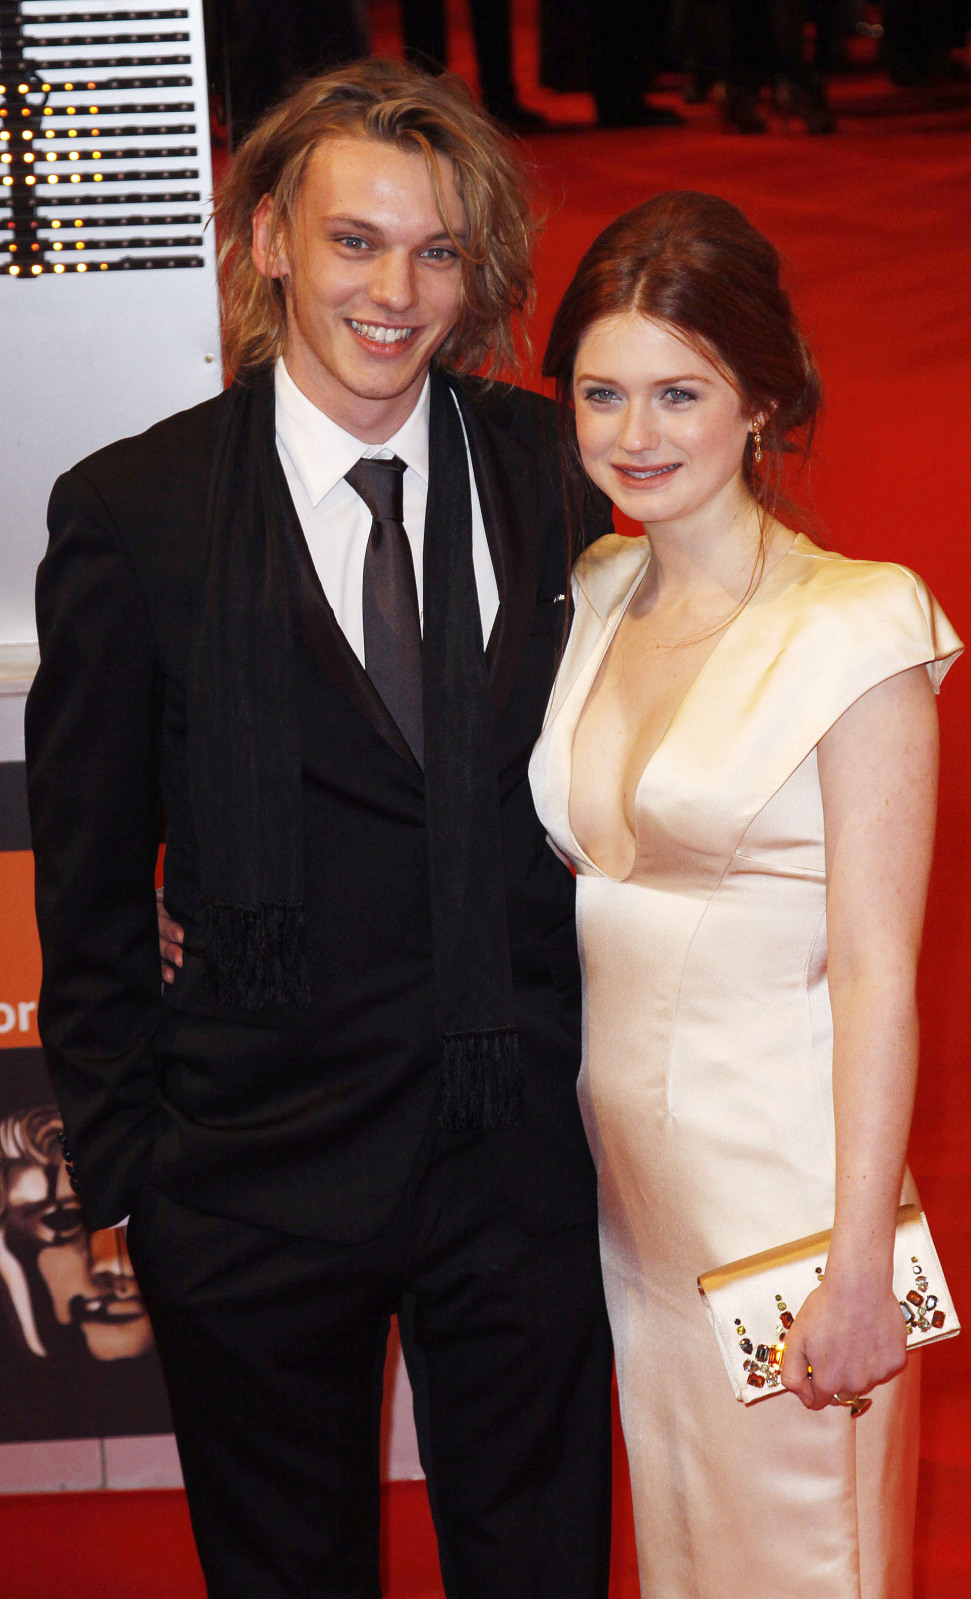 Jamie Campbell Bower y Bonnie Wright prima donna bras sheer girls t shirt bra wedding dreeses